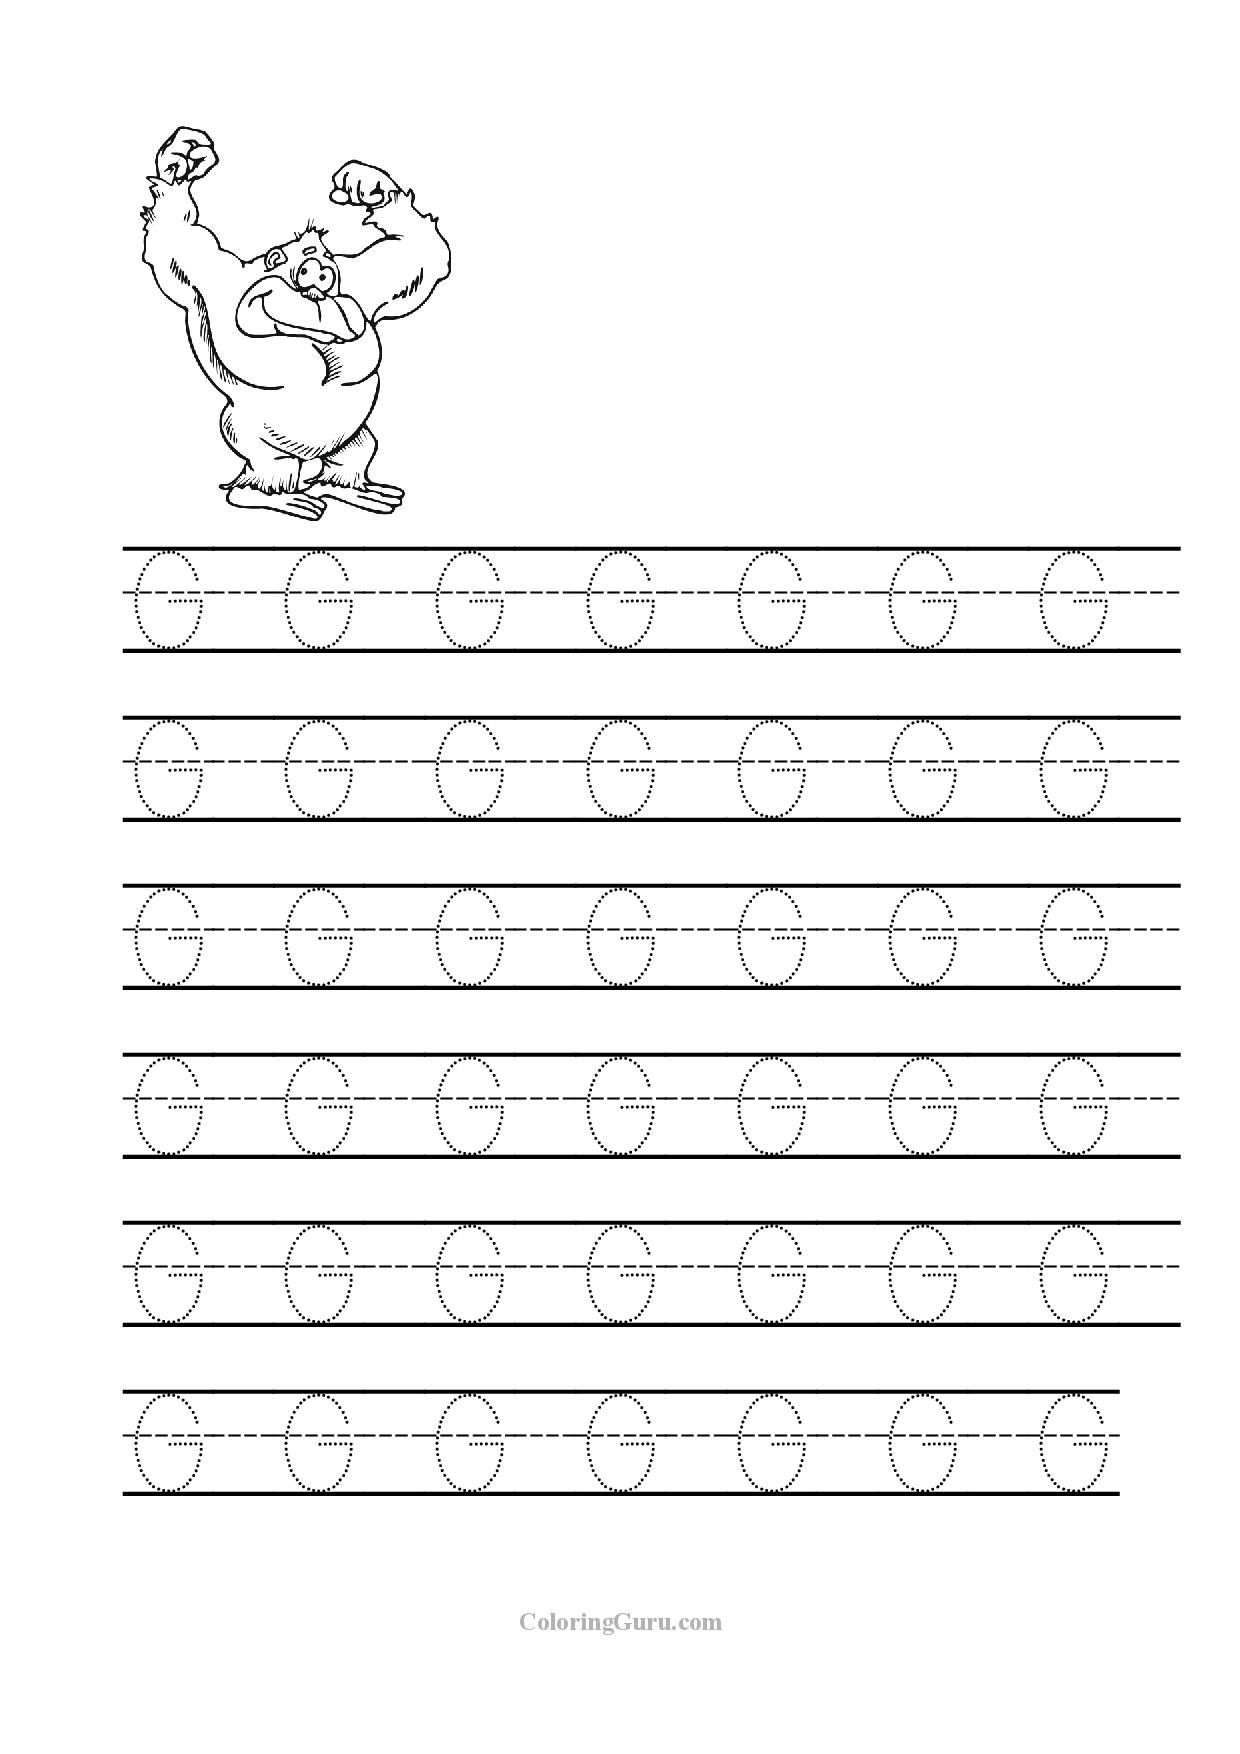 Free Printable Tracing Letter G Worksheets For Preschool within Letter G Worksheets For Pre K